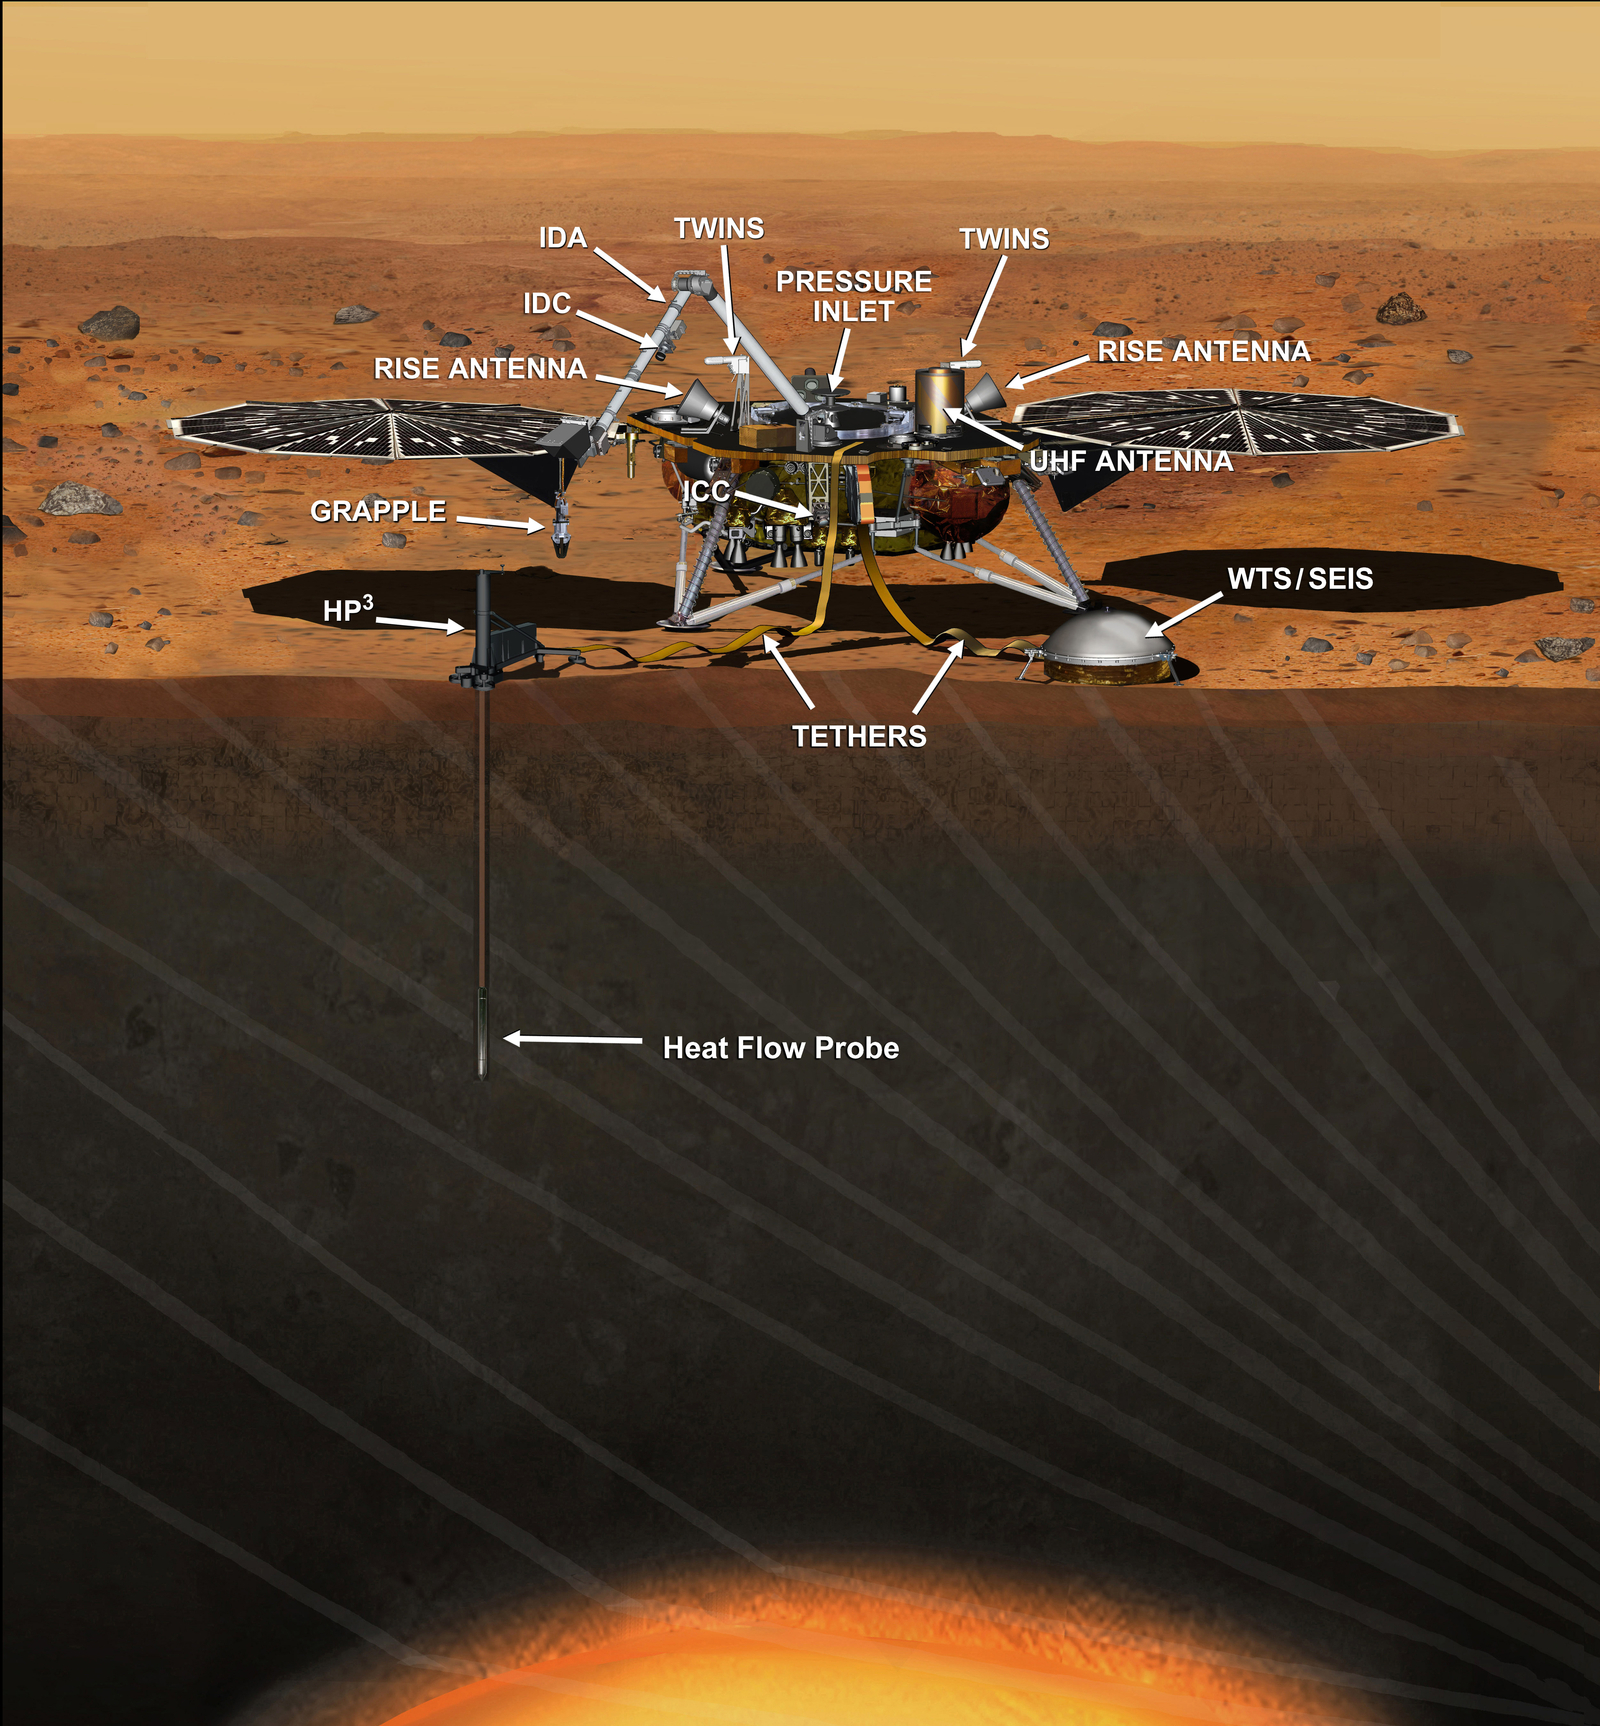 Illustration of the InSight Mars lander on the Red Planet - Labeled